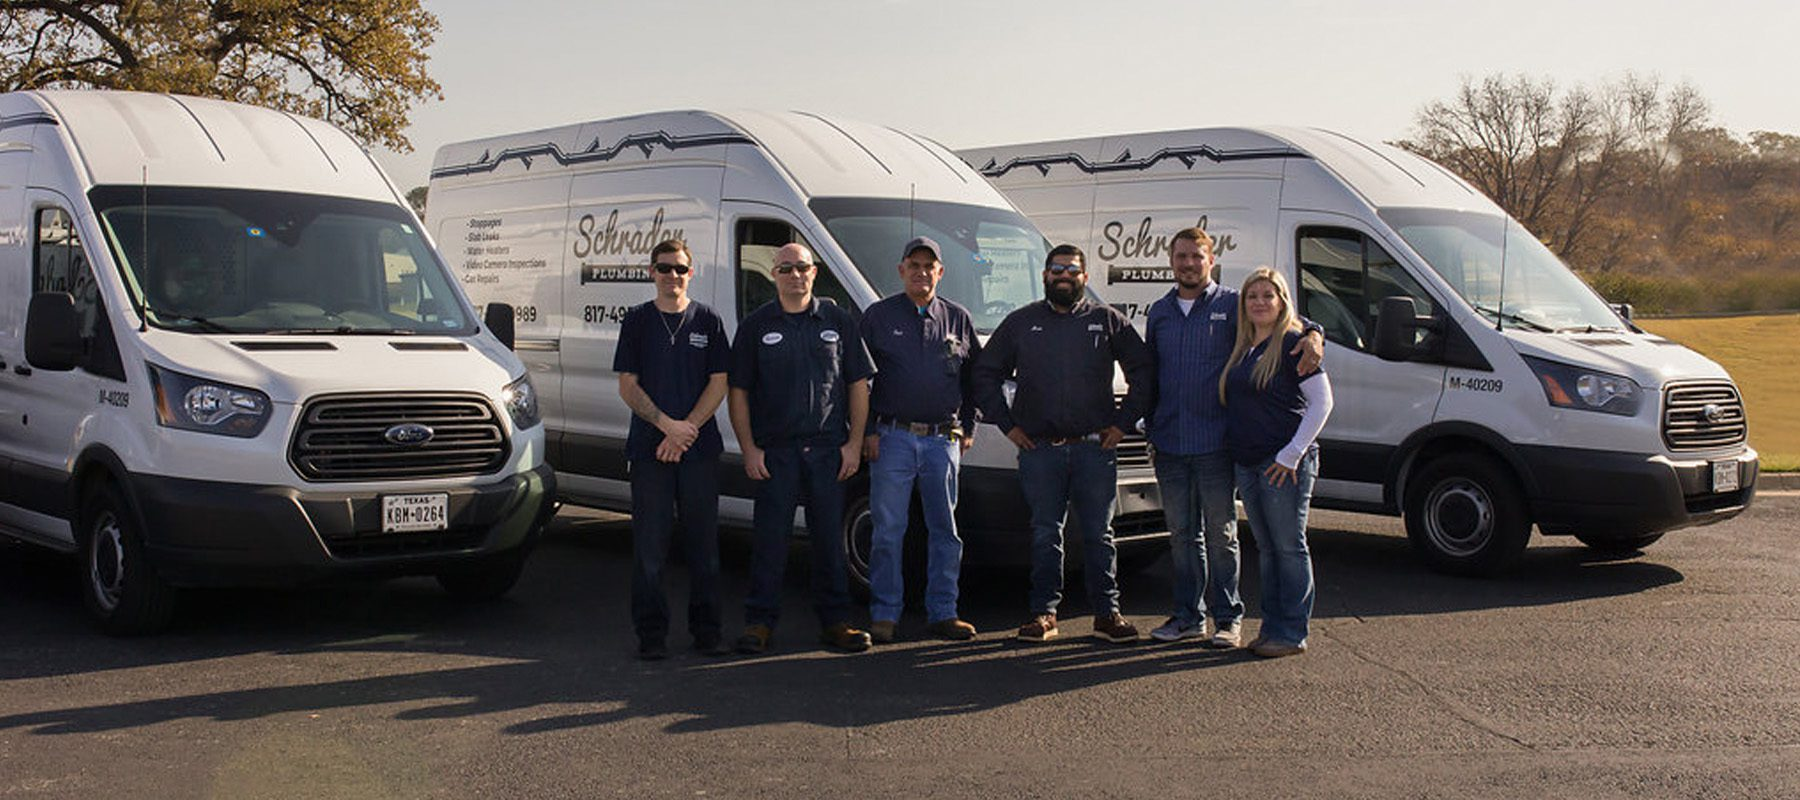 About Schrader Plumbing in Ft Worth